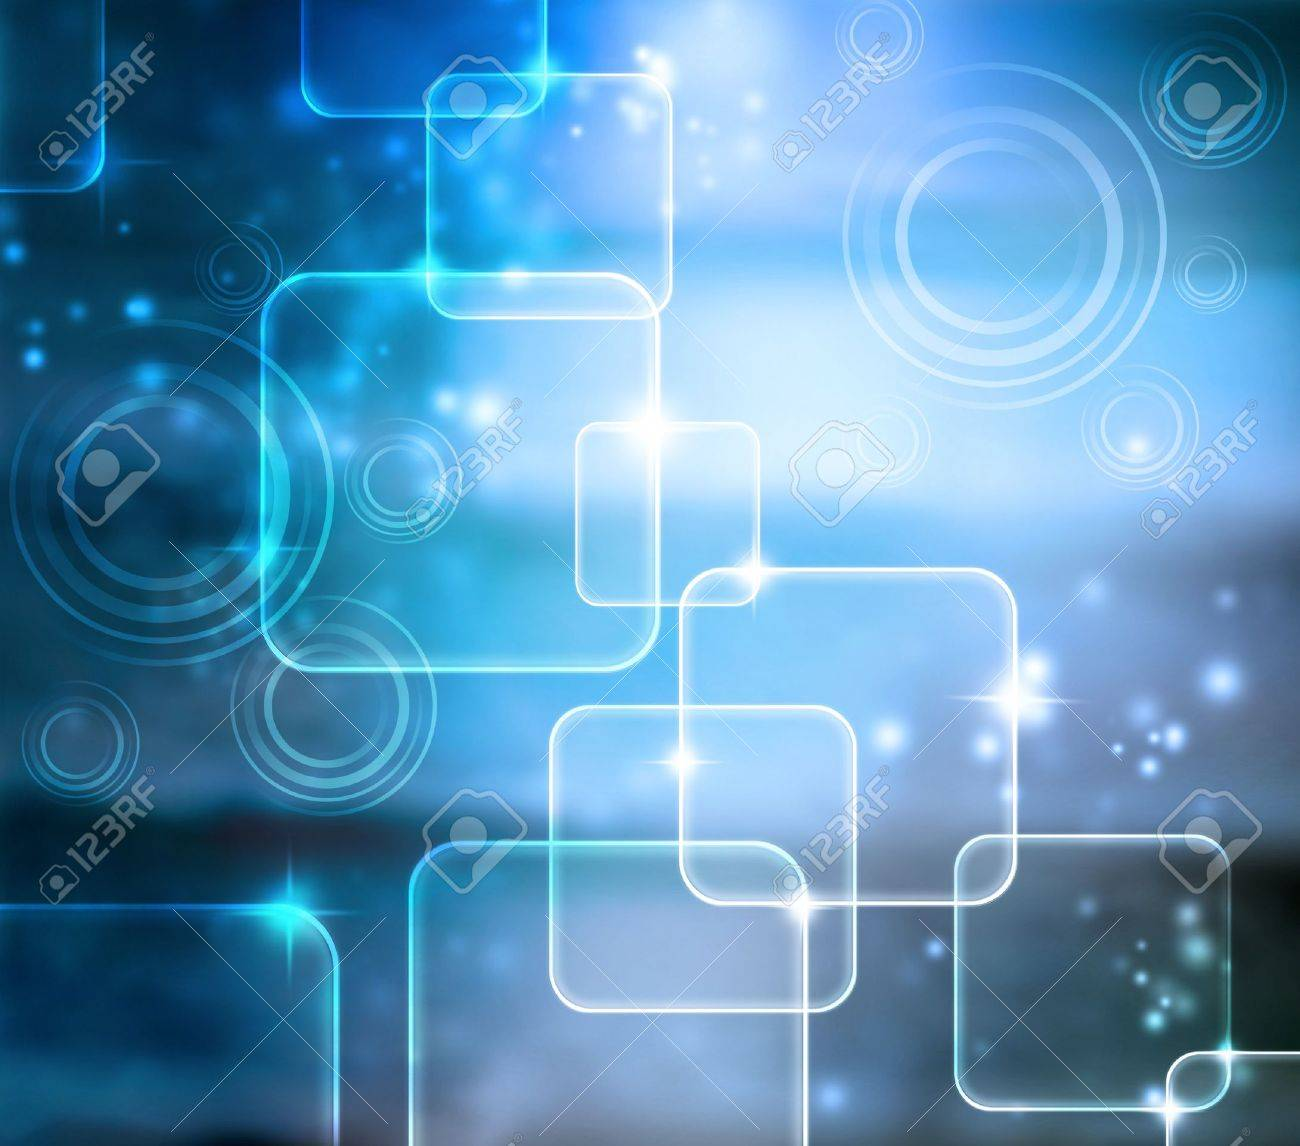 Abstract Tech Blue Shiny Background with Glares Stock Photo - 15314569